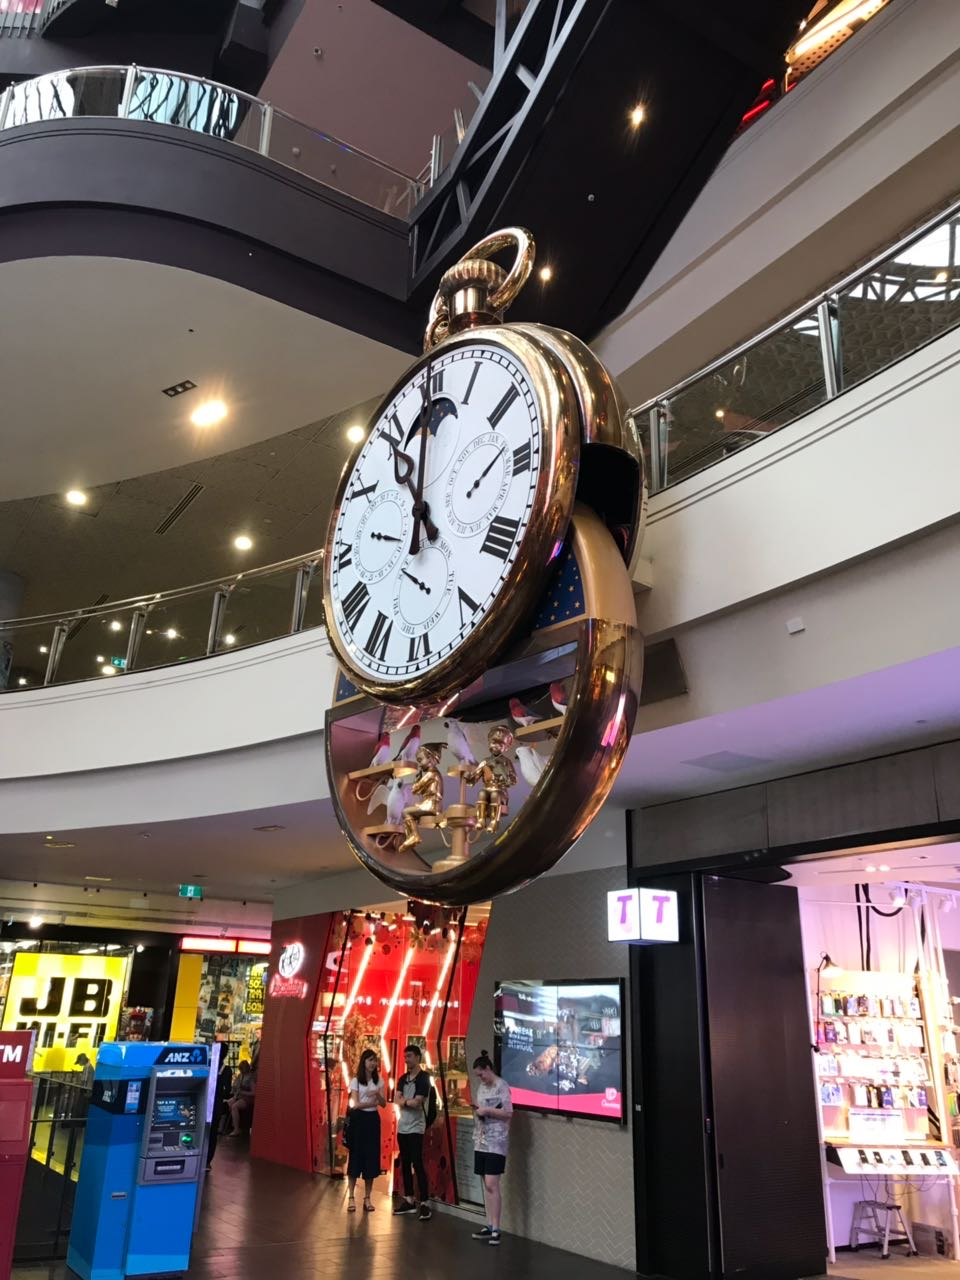 The famous clock in Melbourne Central